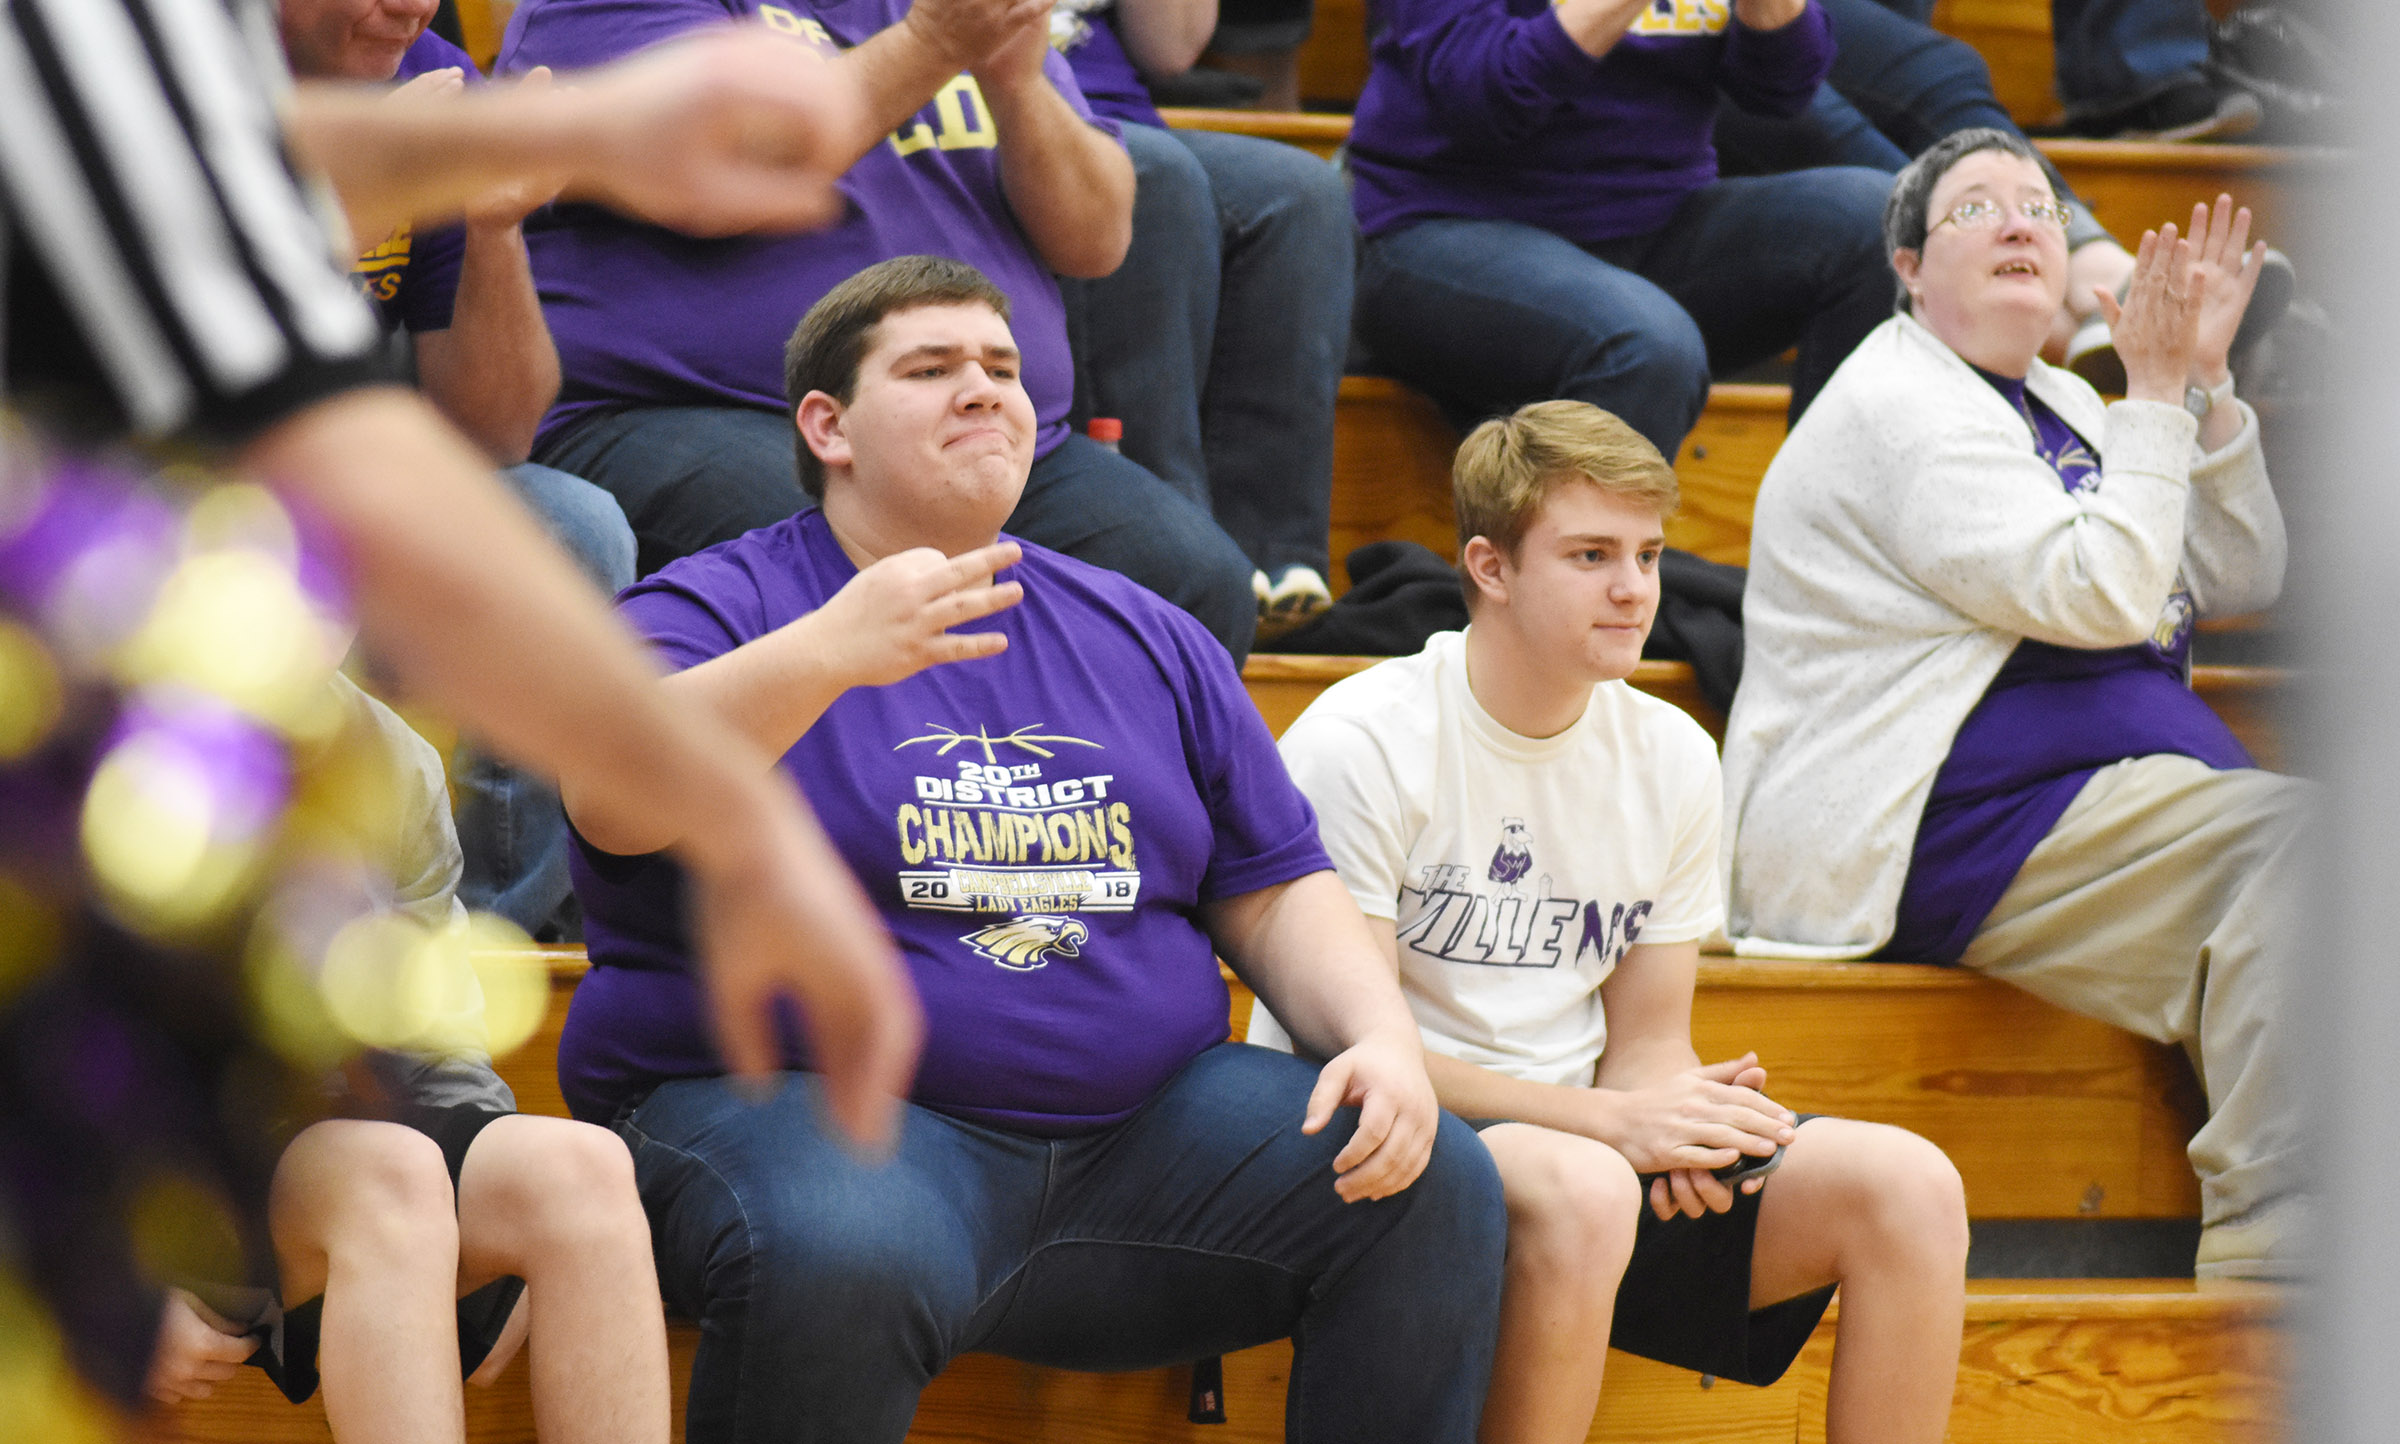 CHS seniors Ryan Wiedewitsch, at left, and Alex Doss react when the Lady Eagles make a shot.